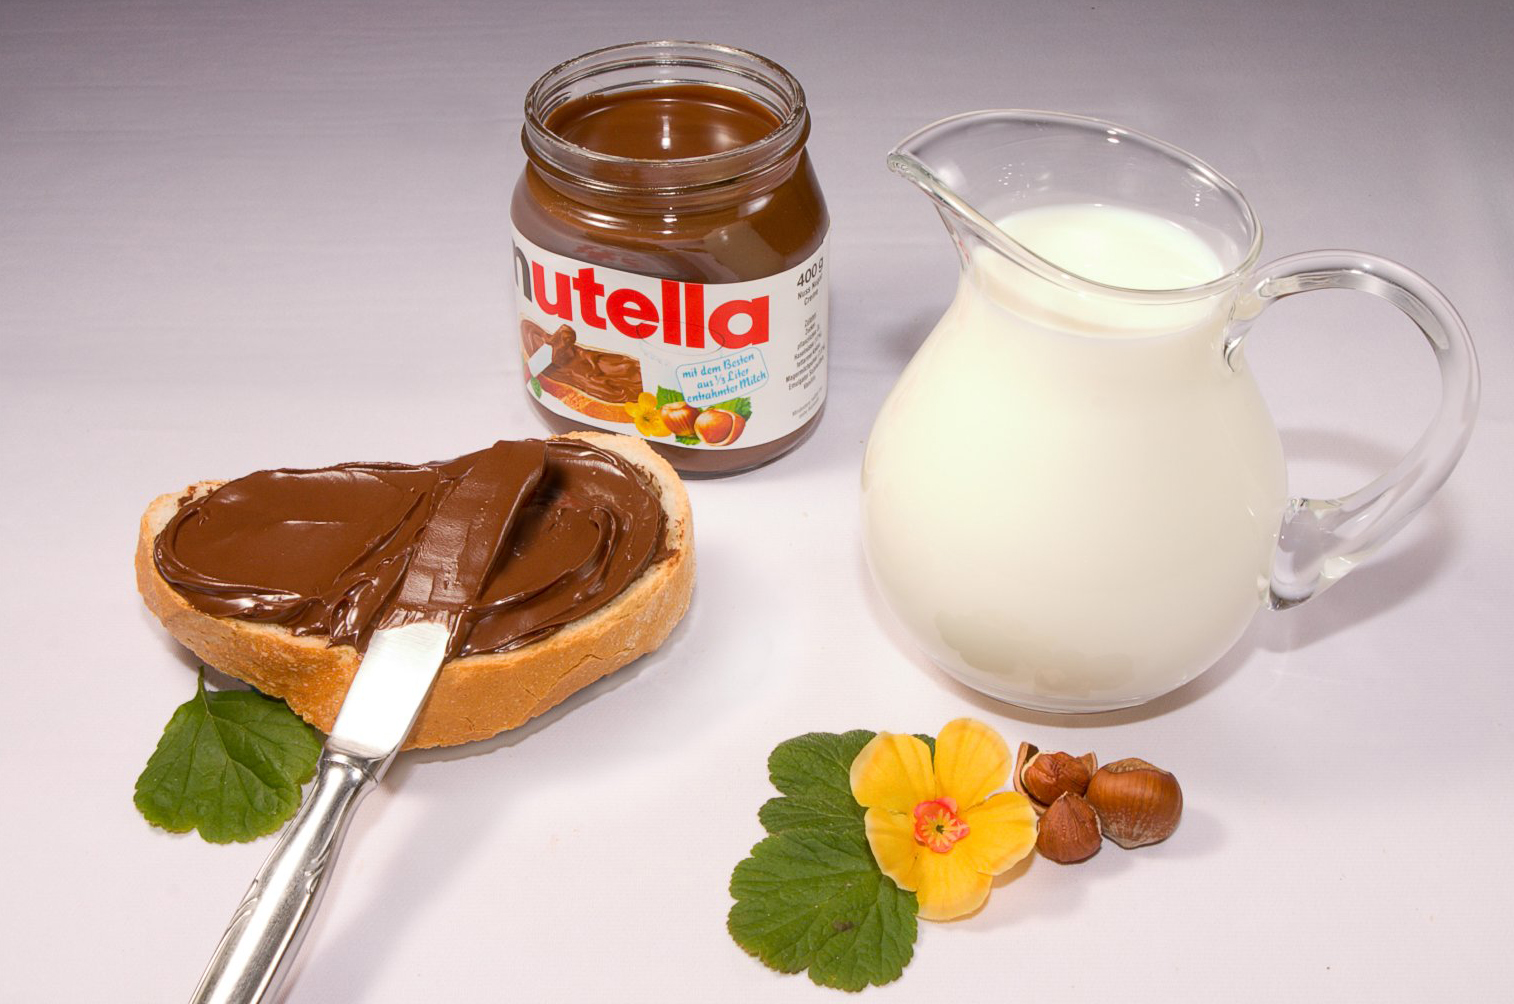 nutella lasts awhile and is delicious